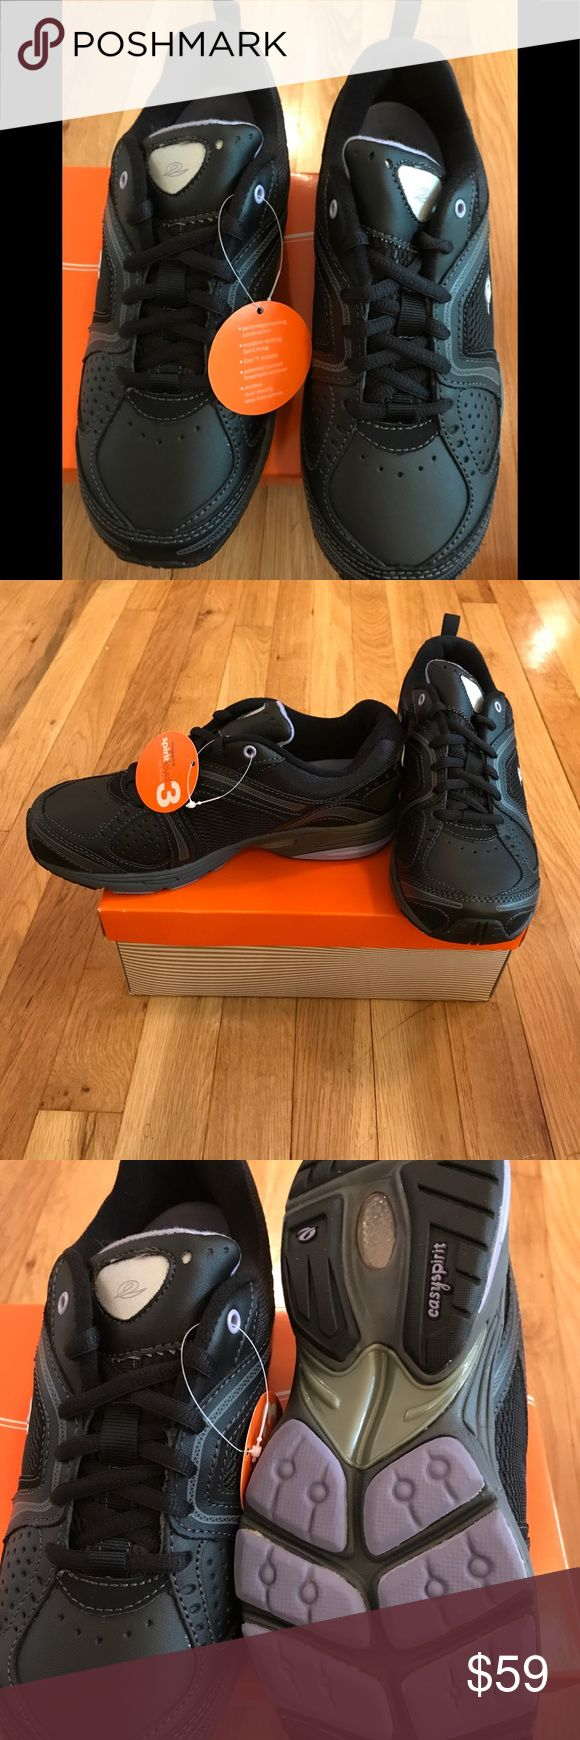 Black Easy Spirit Walking Shoes Keep comfy in these never worn, tags on, still in the box sneakers. Great for long walks, or just daily errands. Easy Spirit Shoes Sneakers